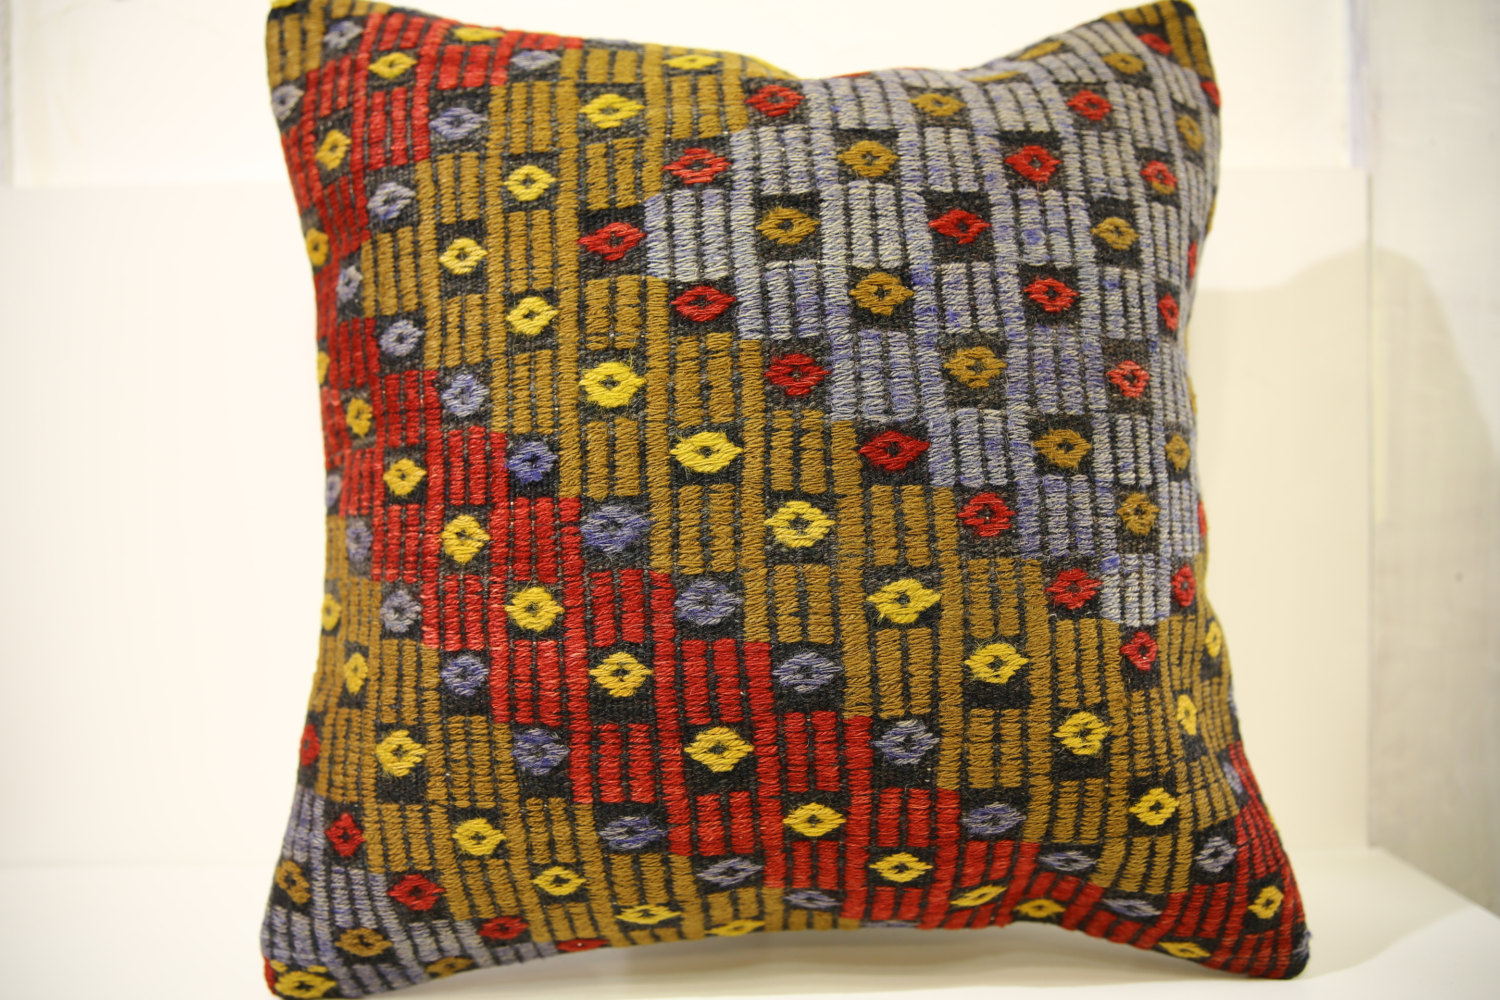 Kilim Pillows | 20x20 | Decorative Pillows | 1494 | Accent Pillows, Kilim kelim